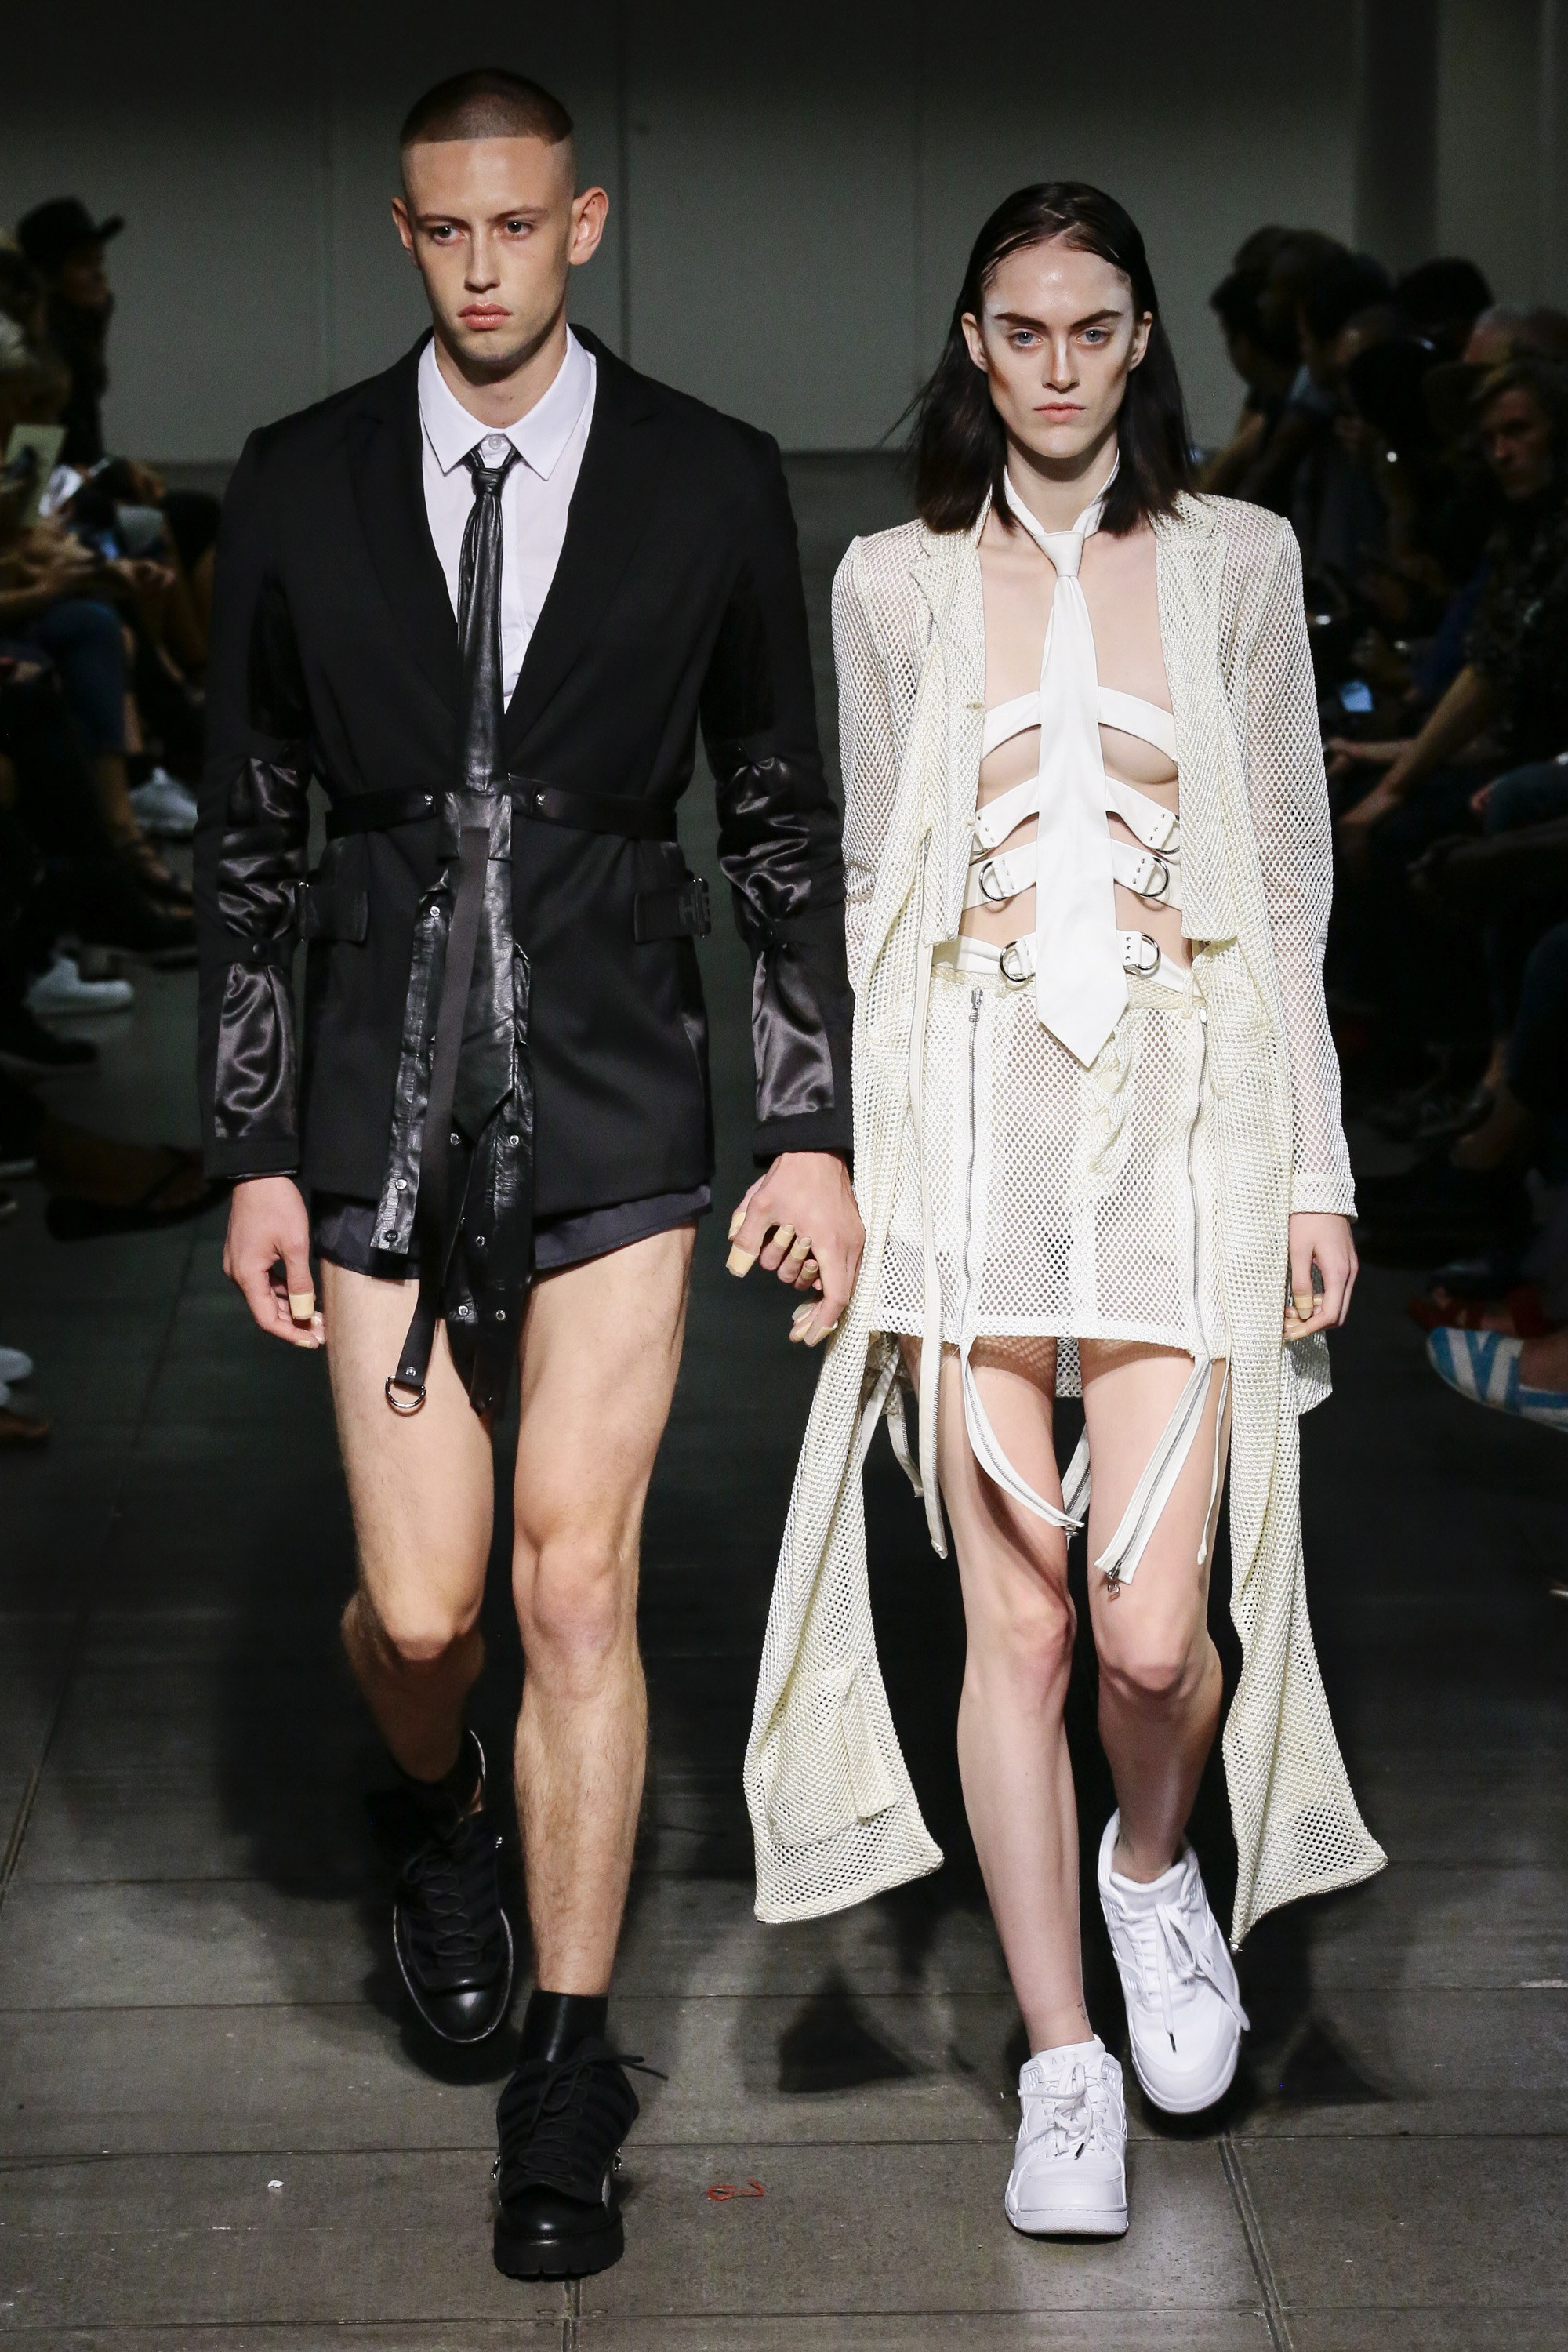 FOR ONE AND ALL: THE END OF GENDER DIVIDES IN FASHION